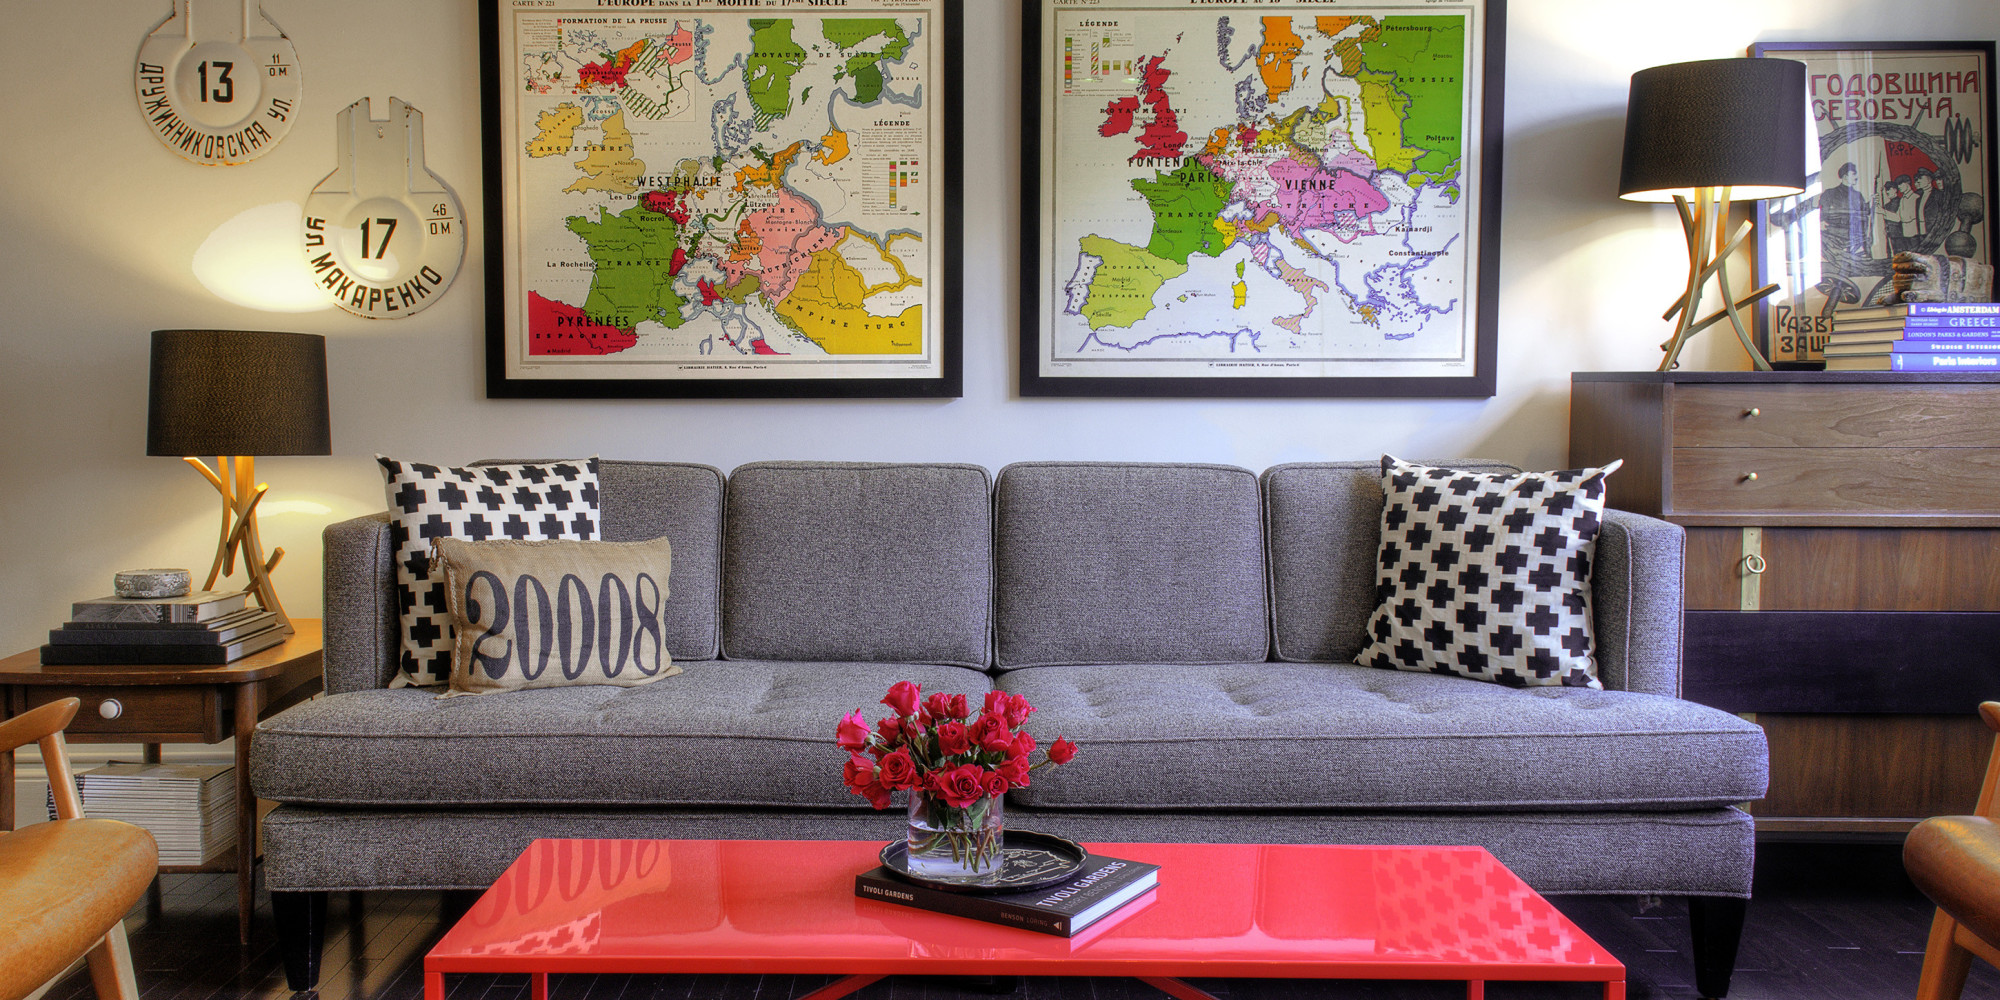 50 Ways To Update Your Living Room For 50 Or Less Photos